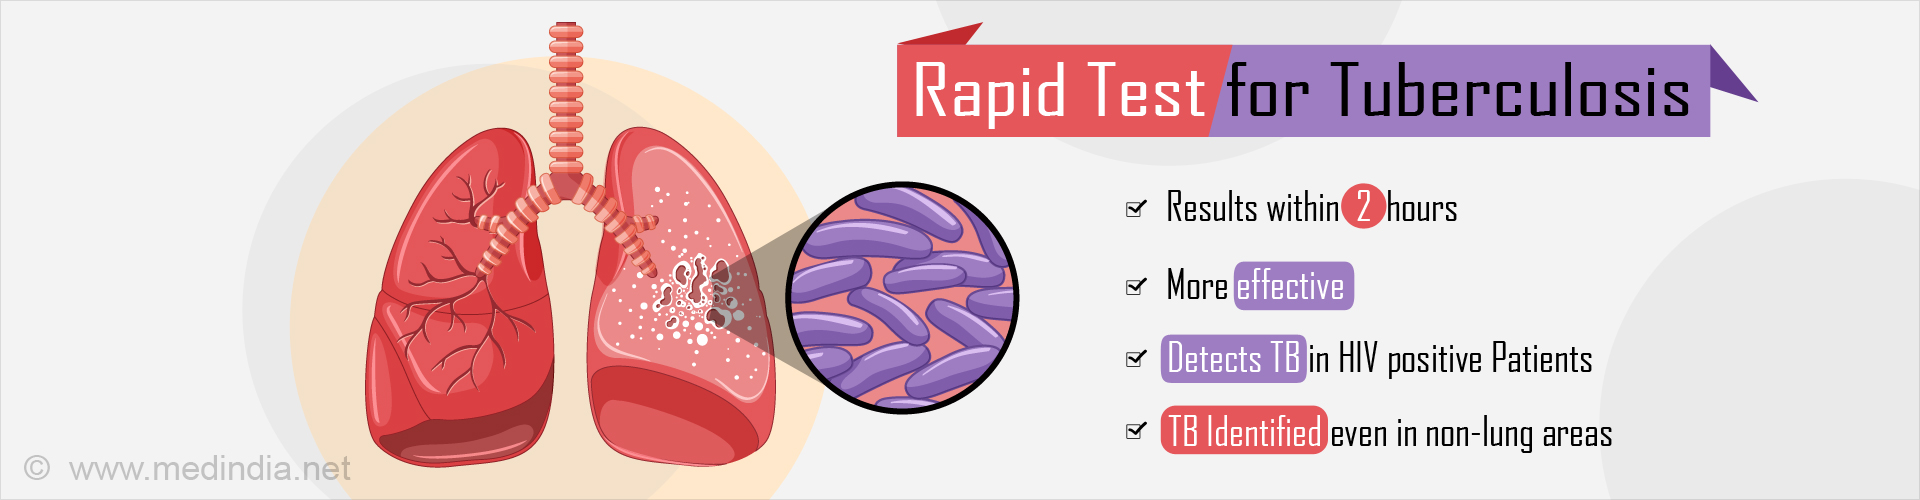 Rapid Test for Tuberculosis